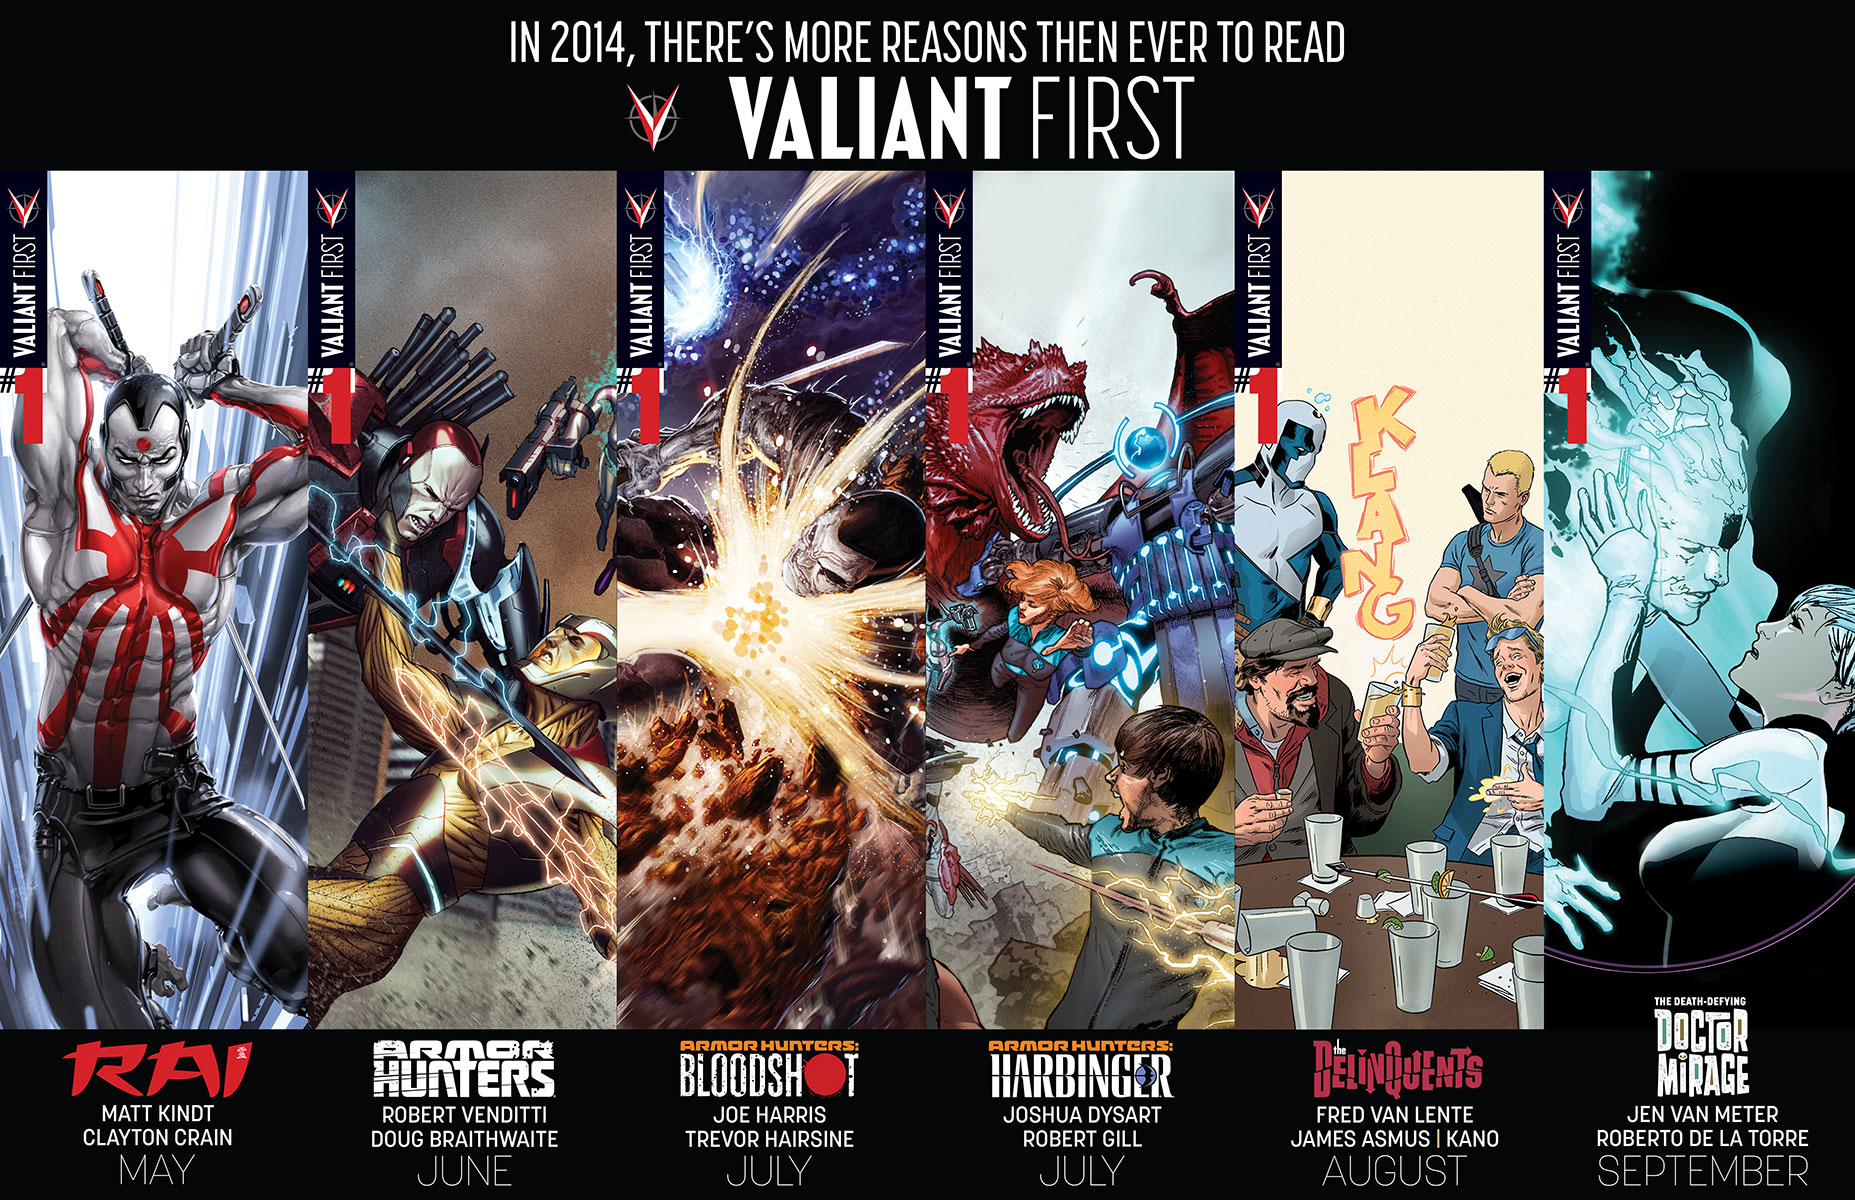 3636295-valiant_first_poster